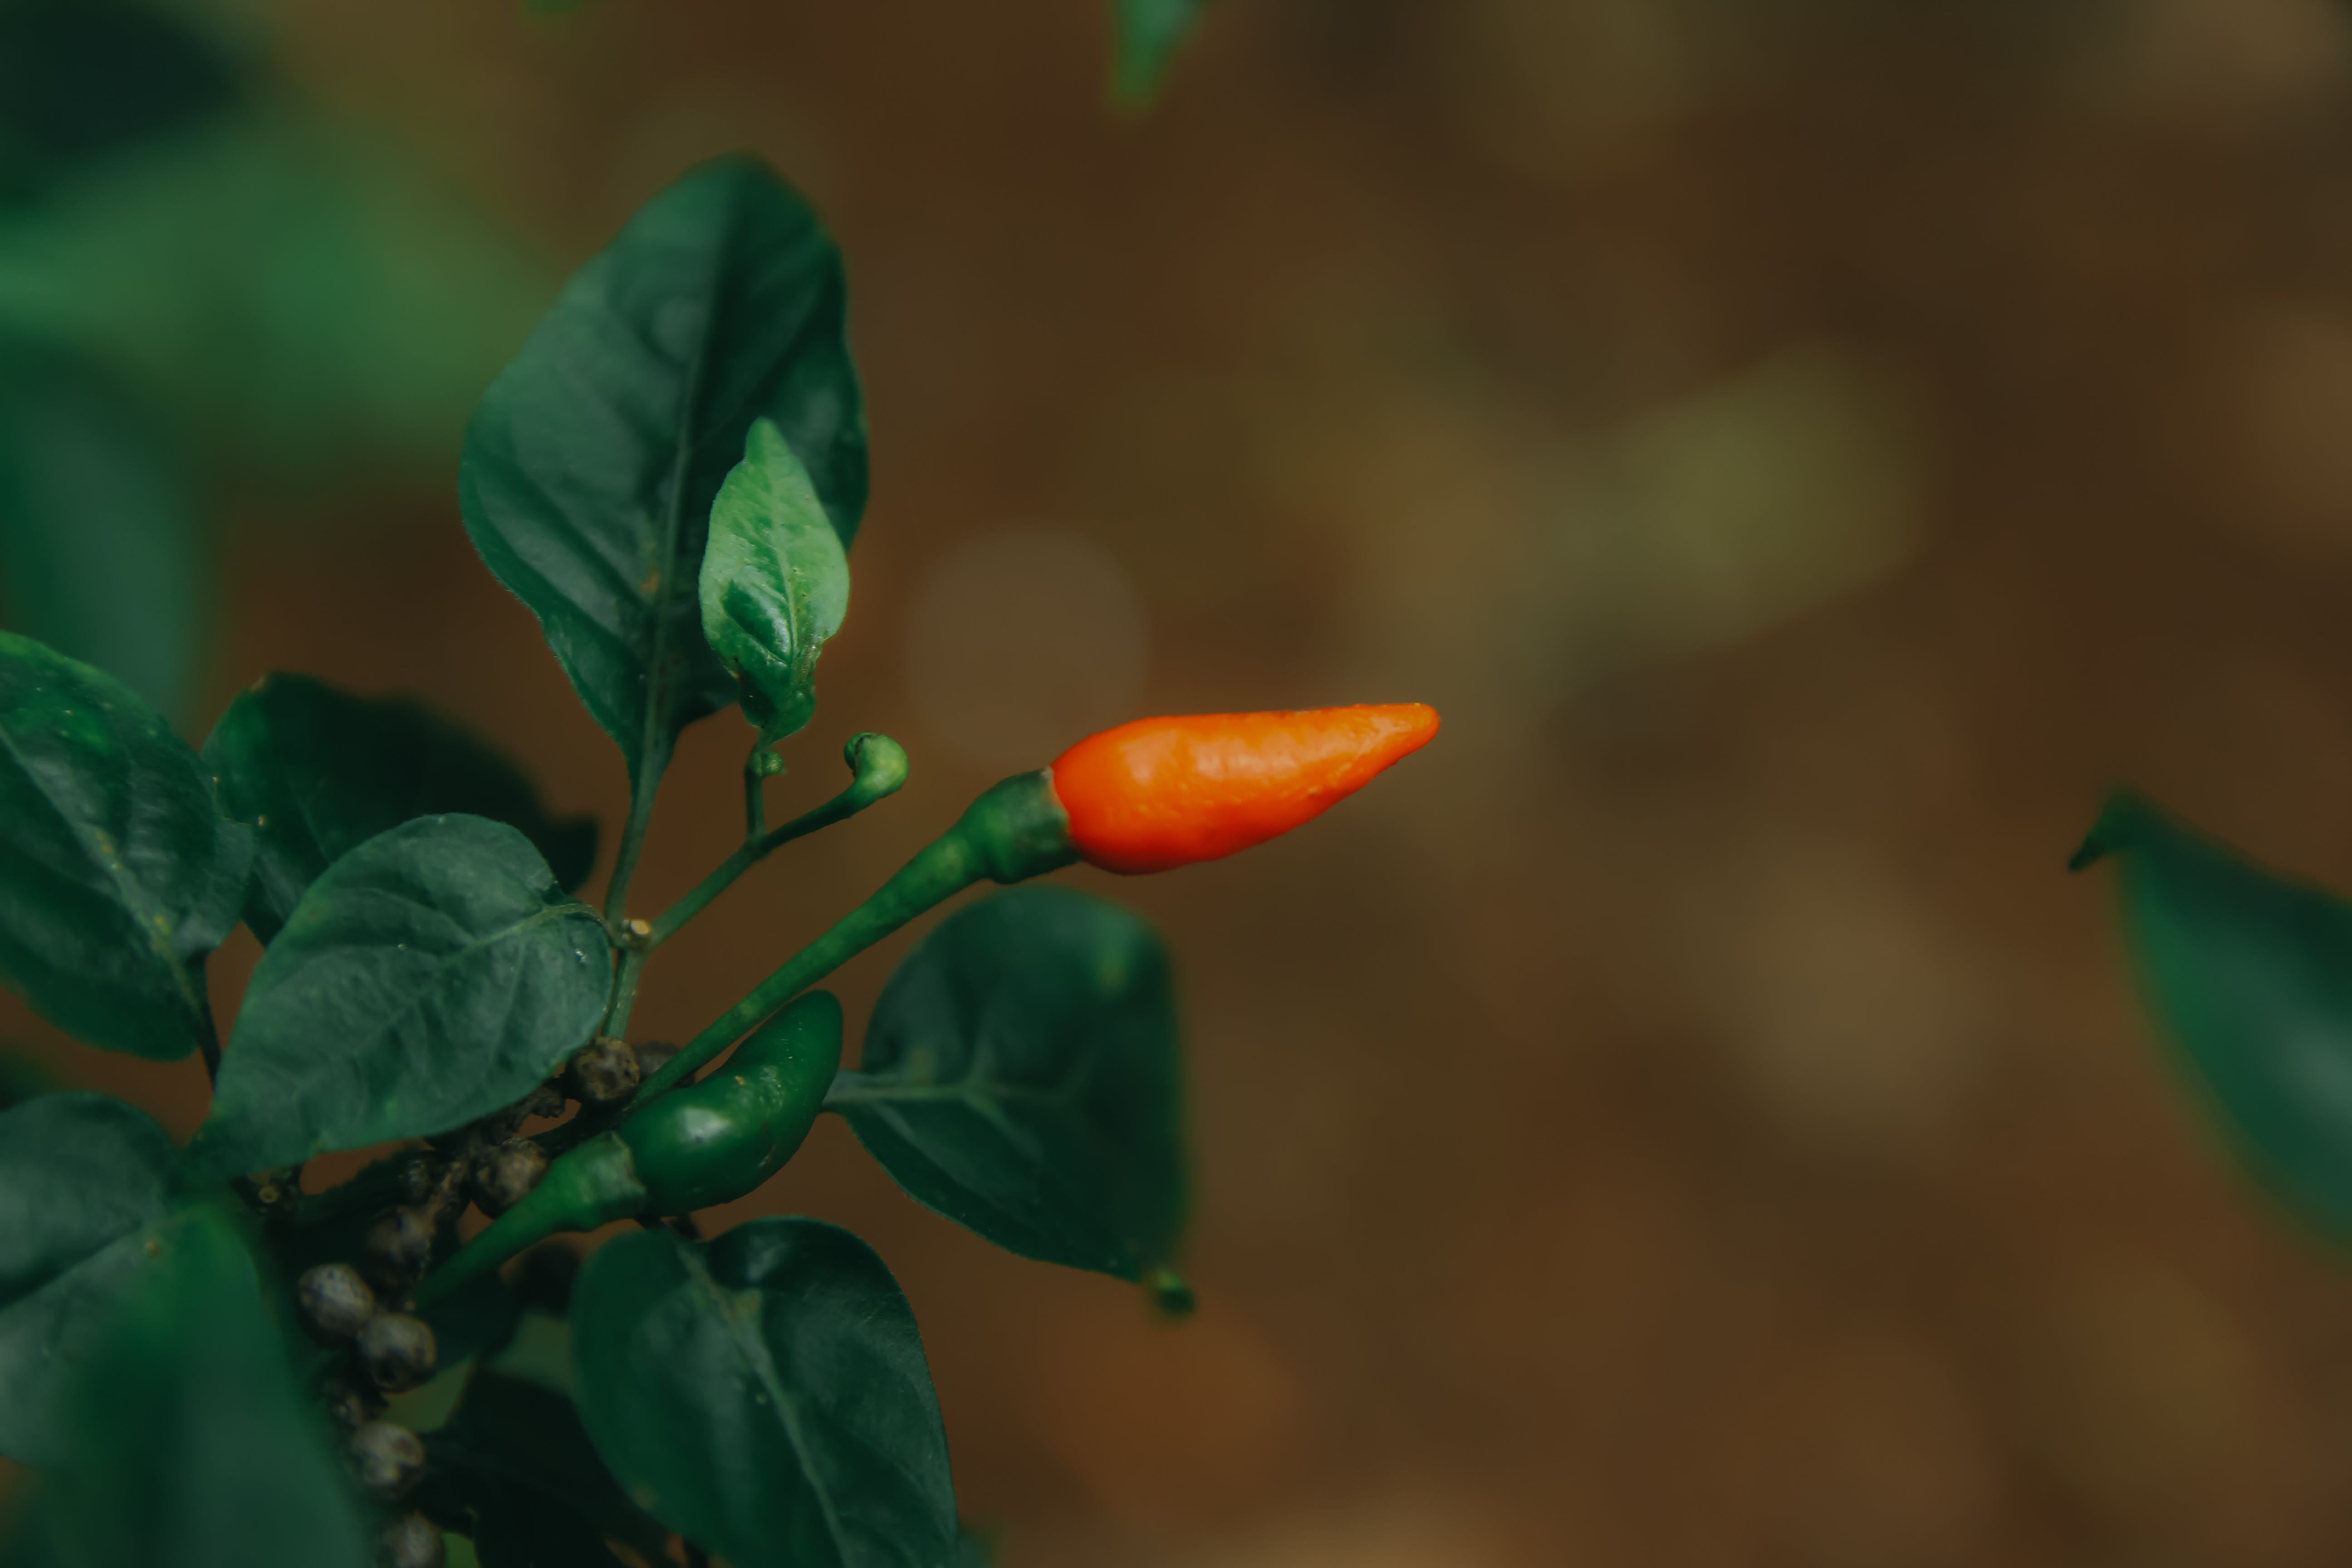 Close-Up Photography of Chili Pepper